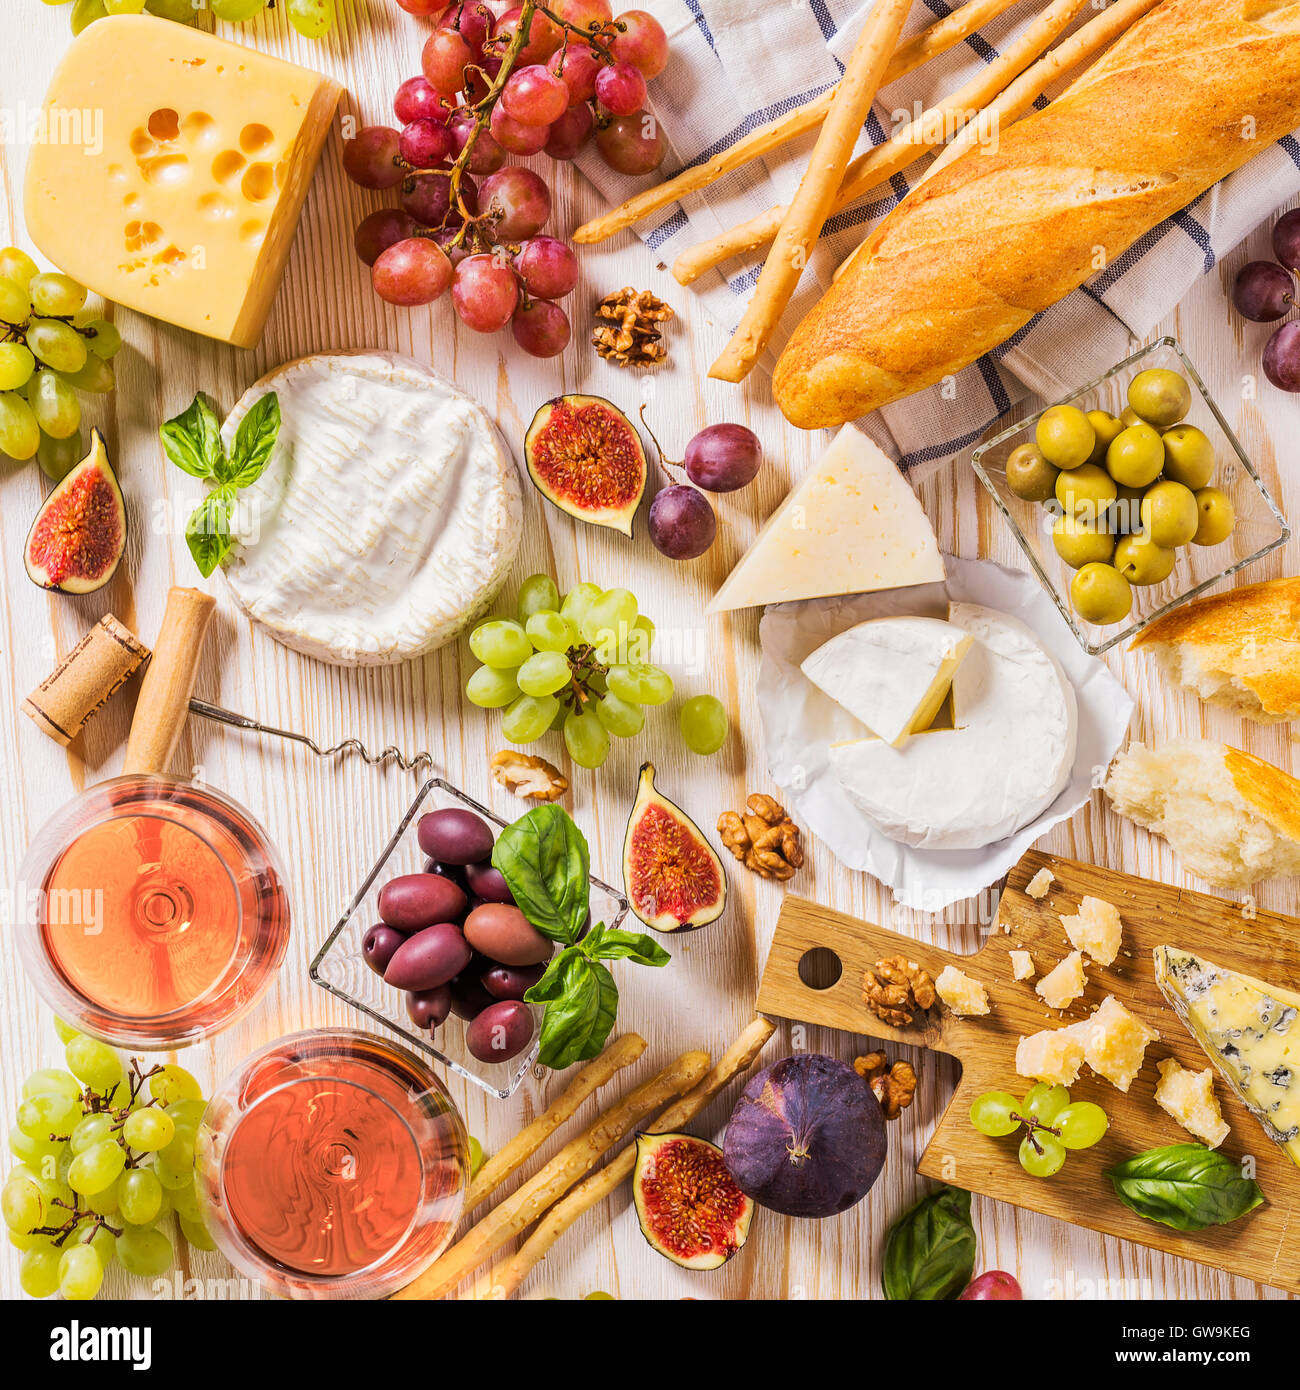 Assortment of cheeses, fruits, breads, wine and snacks on white - Stock Image